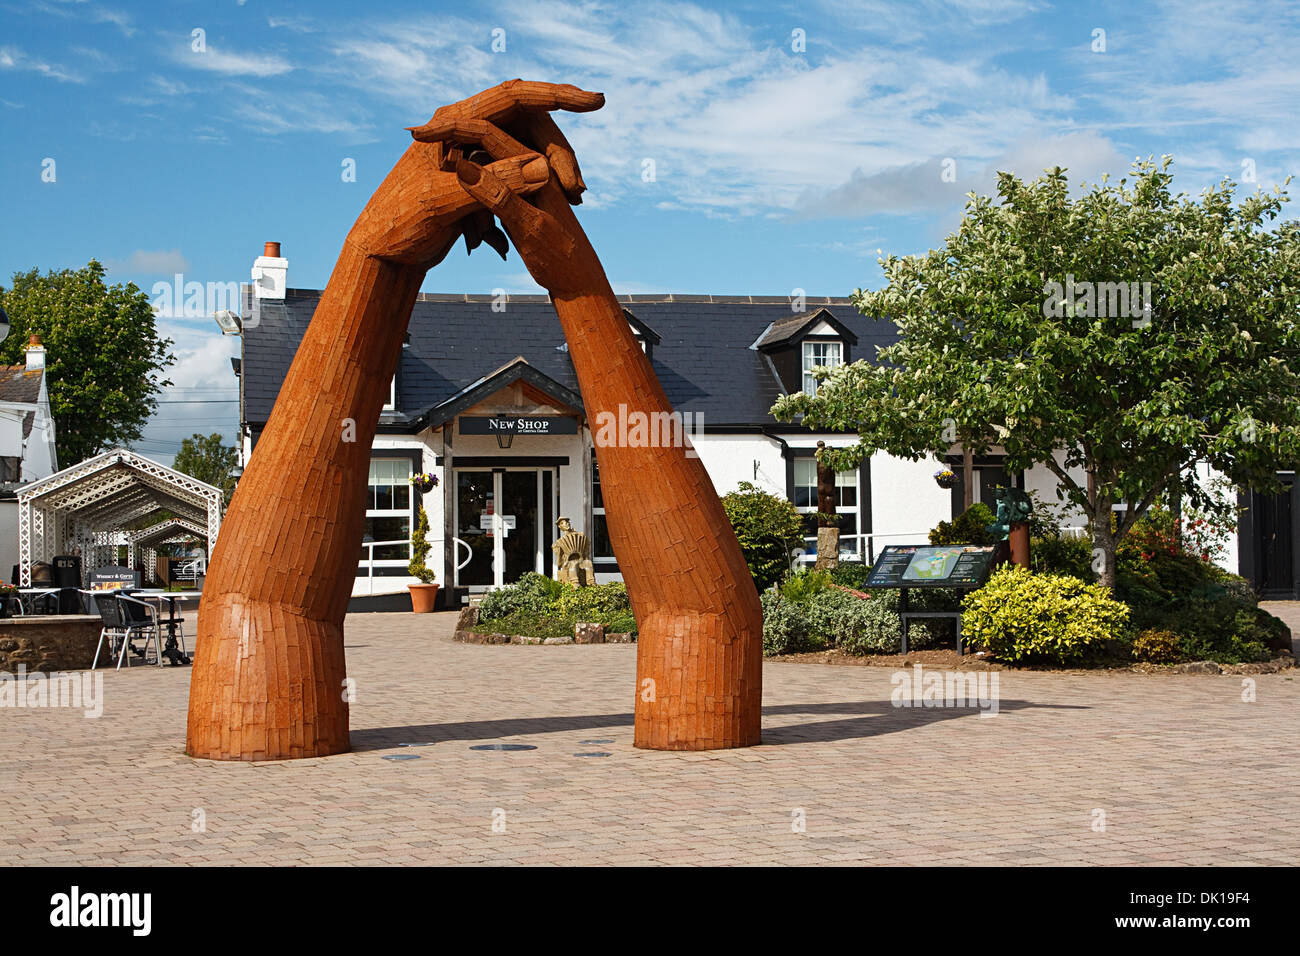 The Old Blacksmith Shop Visitor Centre at Gretna Green, Dumfries and Galloway - Stock Image